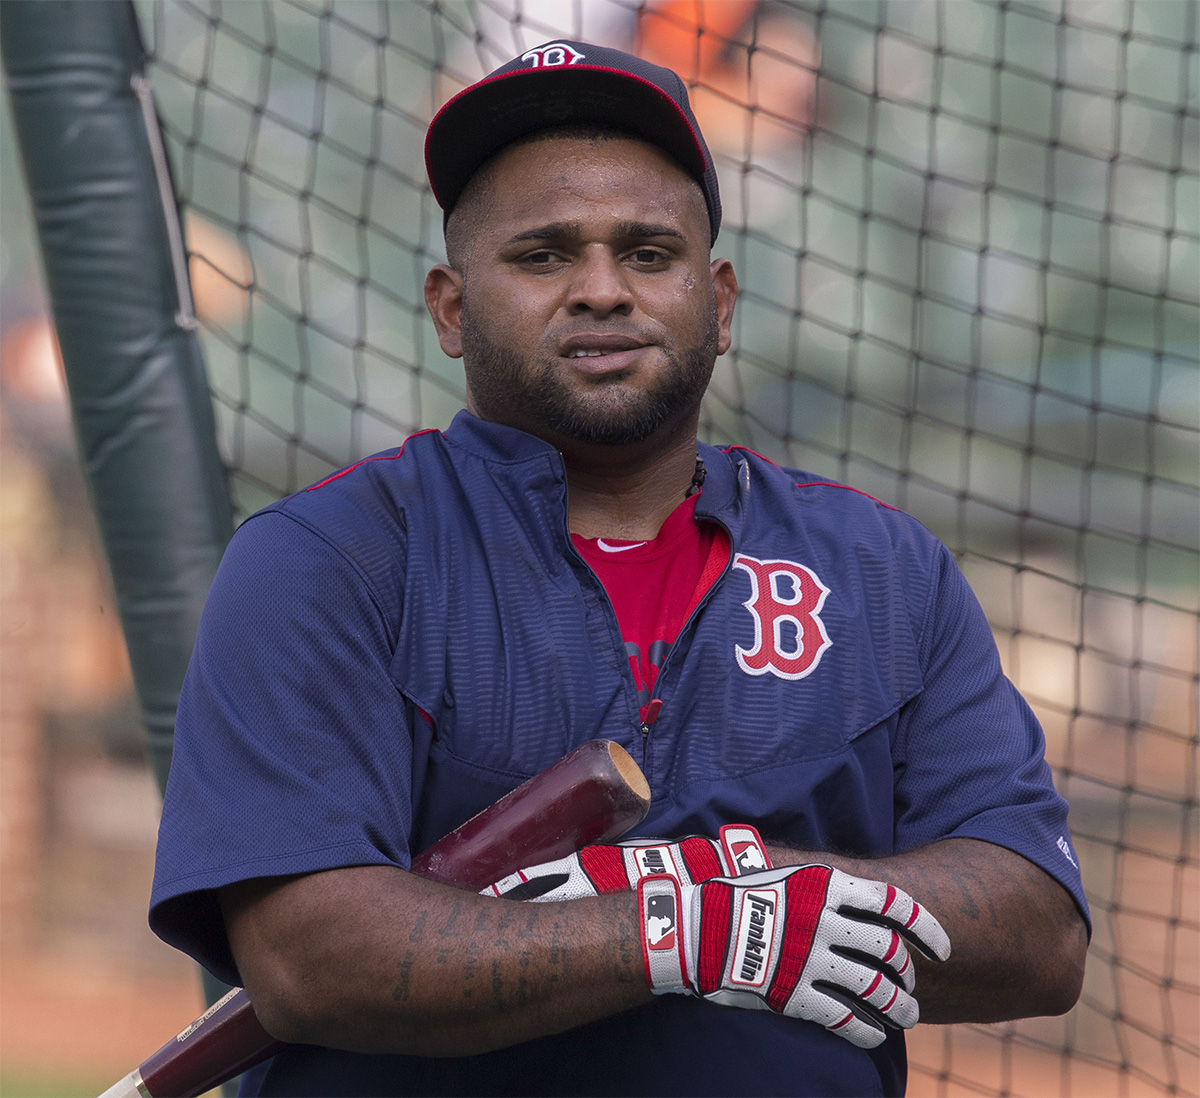 Pablo Sandoval by Keith Allison on Flickr/Creative Commons